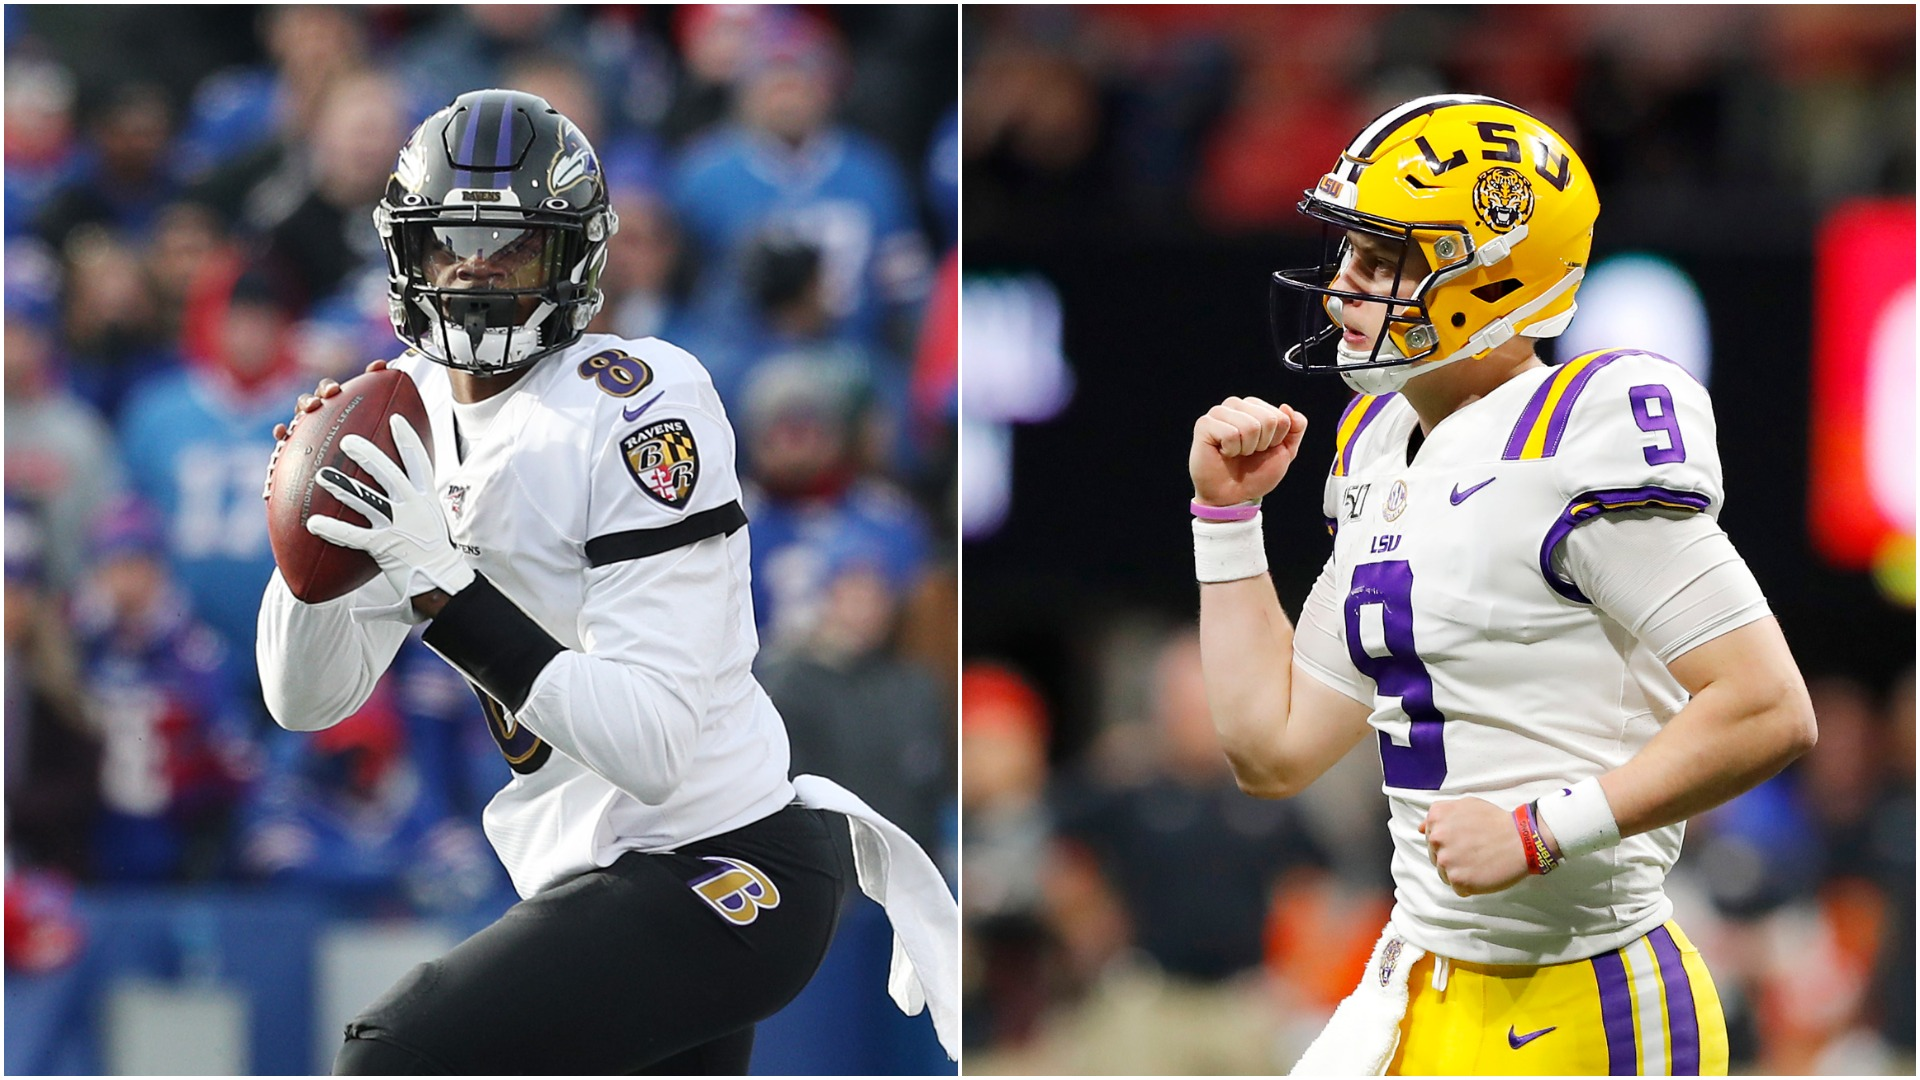 Joe Burrow appears destined to be the number one pick in the 2020 NFL Draft and Lamar Jackson believes he should win the Heisman Trophy too.